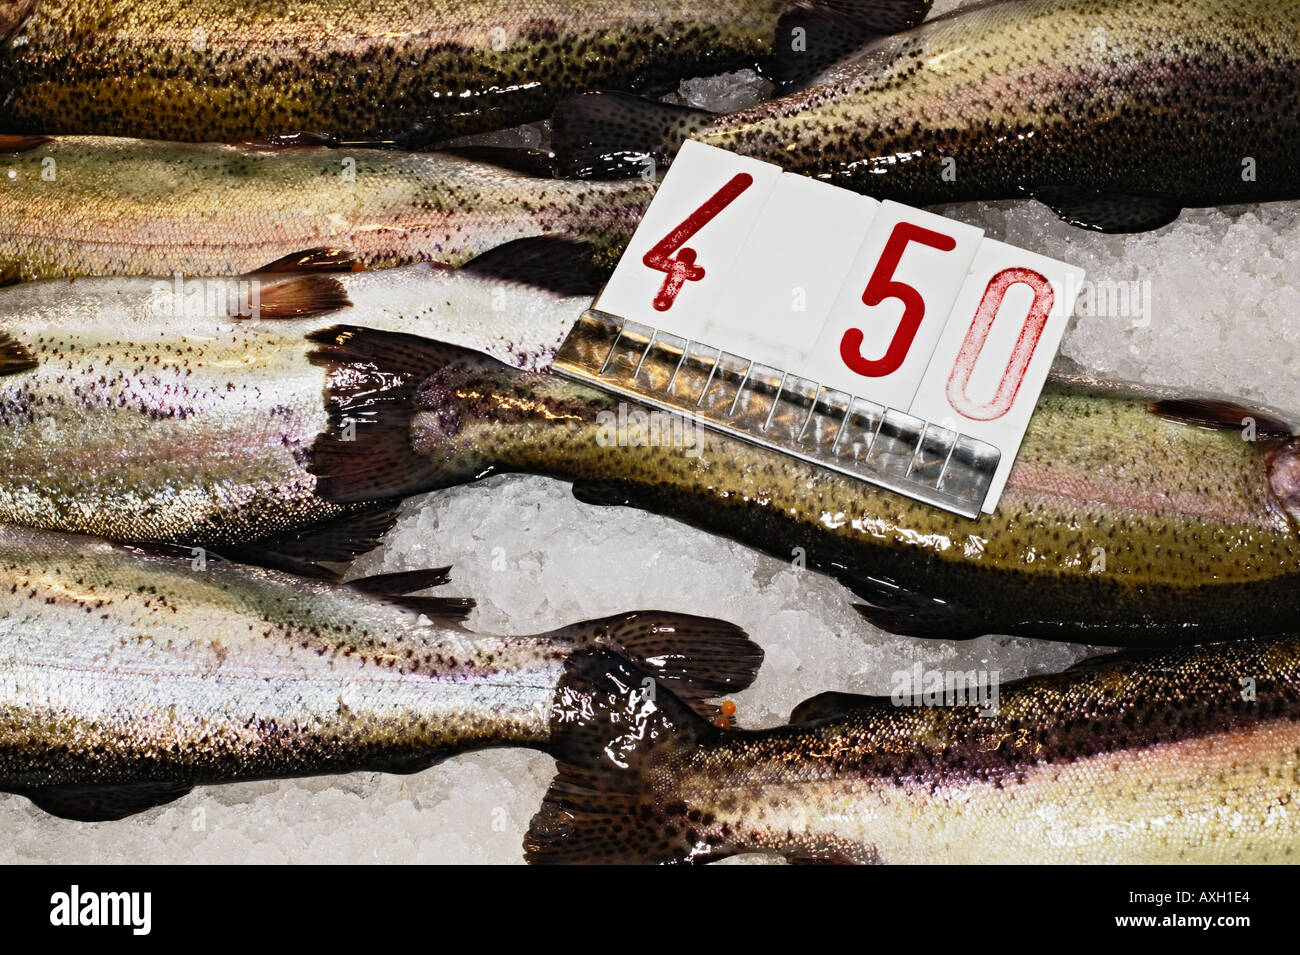 Display Of Fresh Fish At Fish Market In Venice - Stock Image